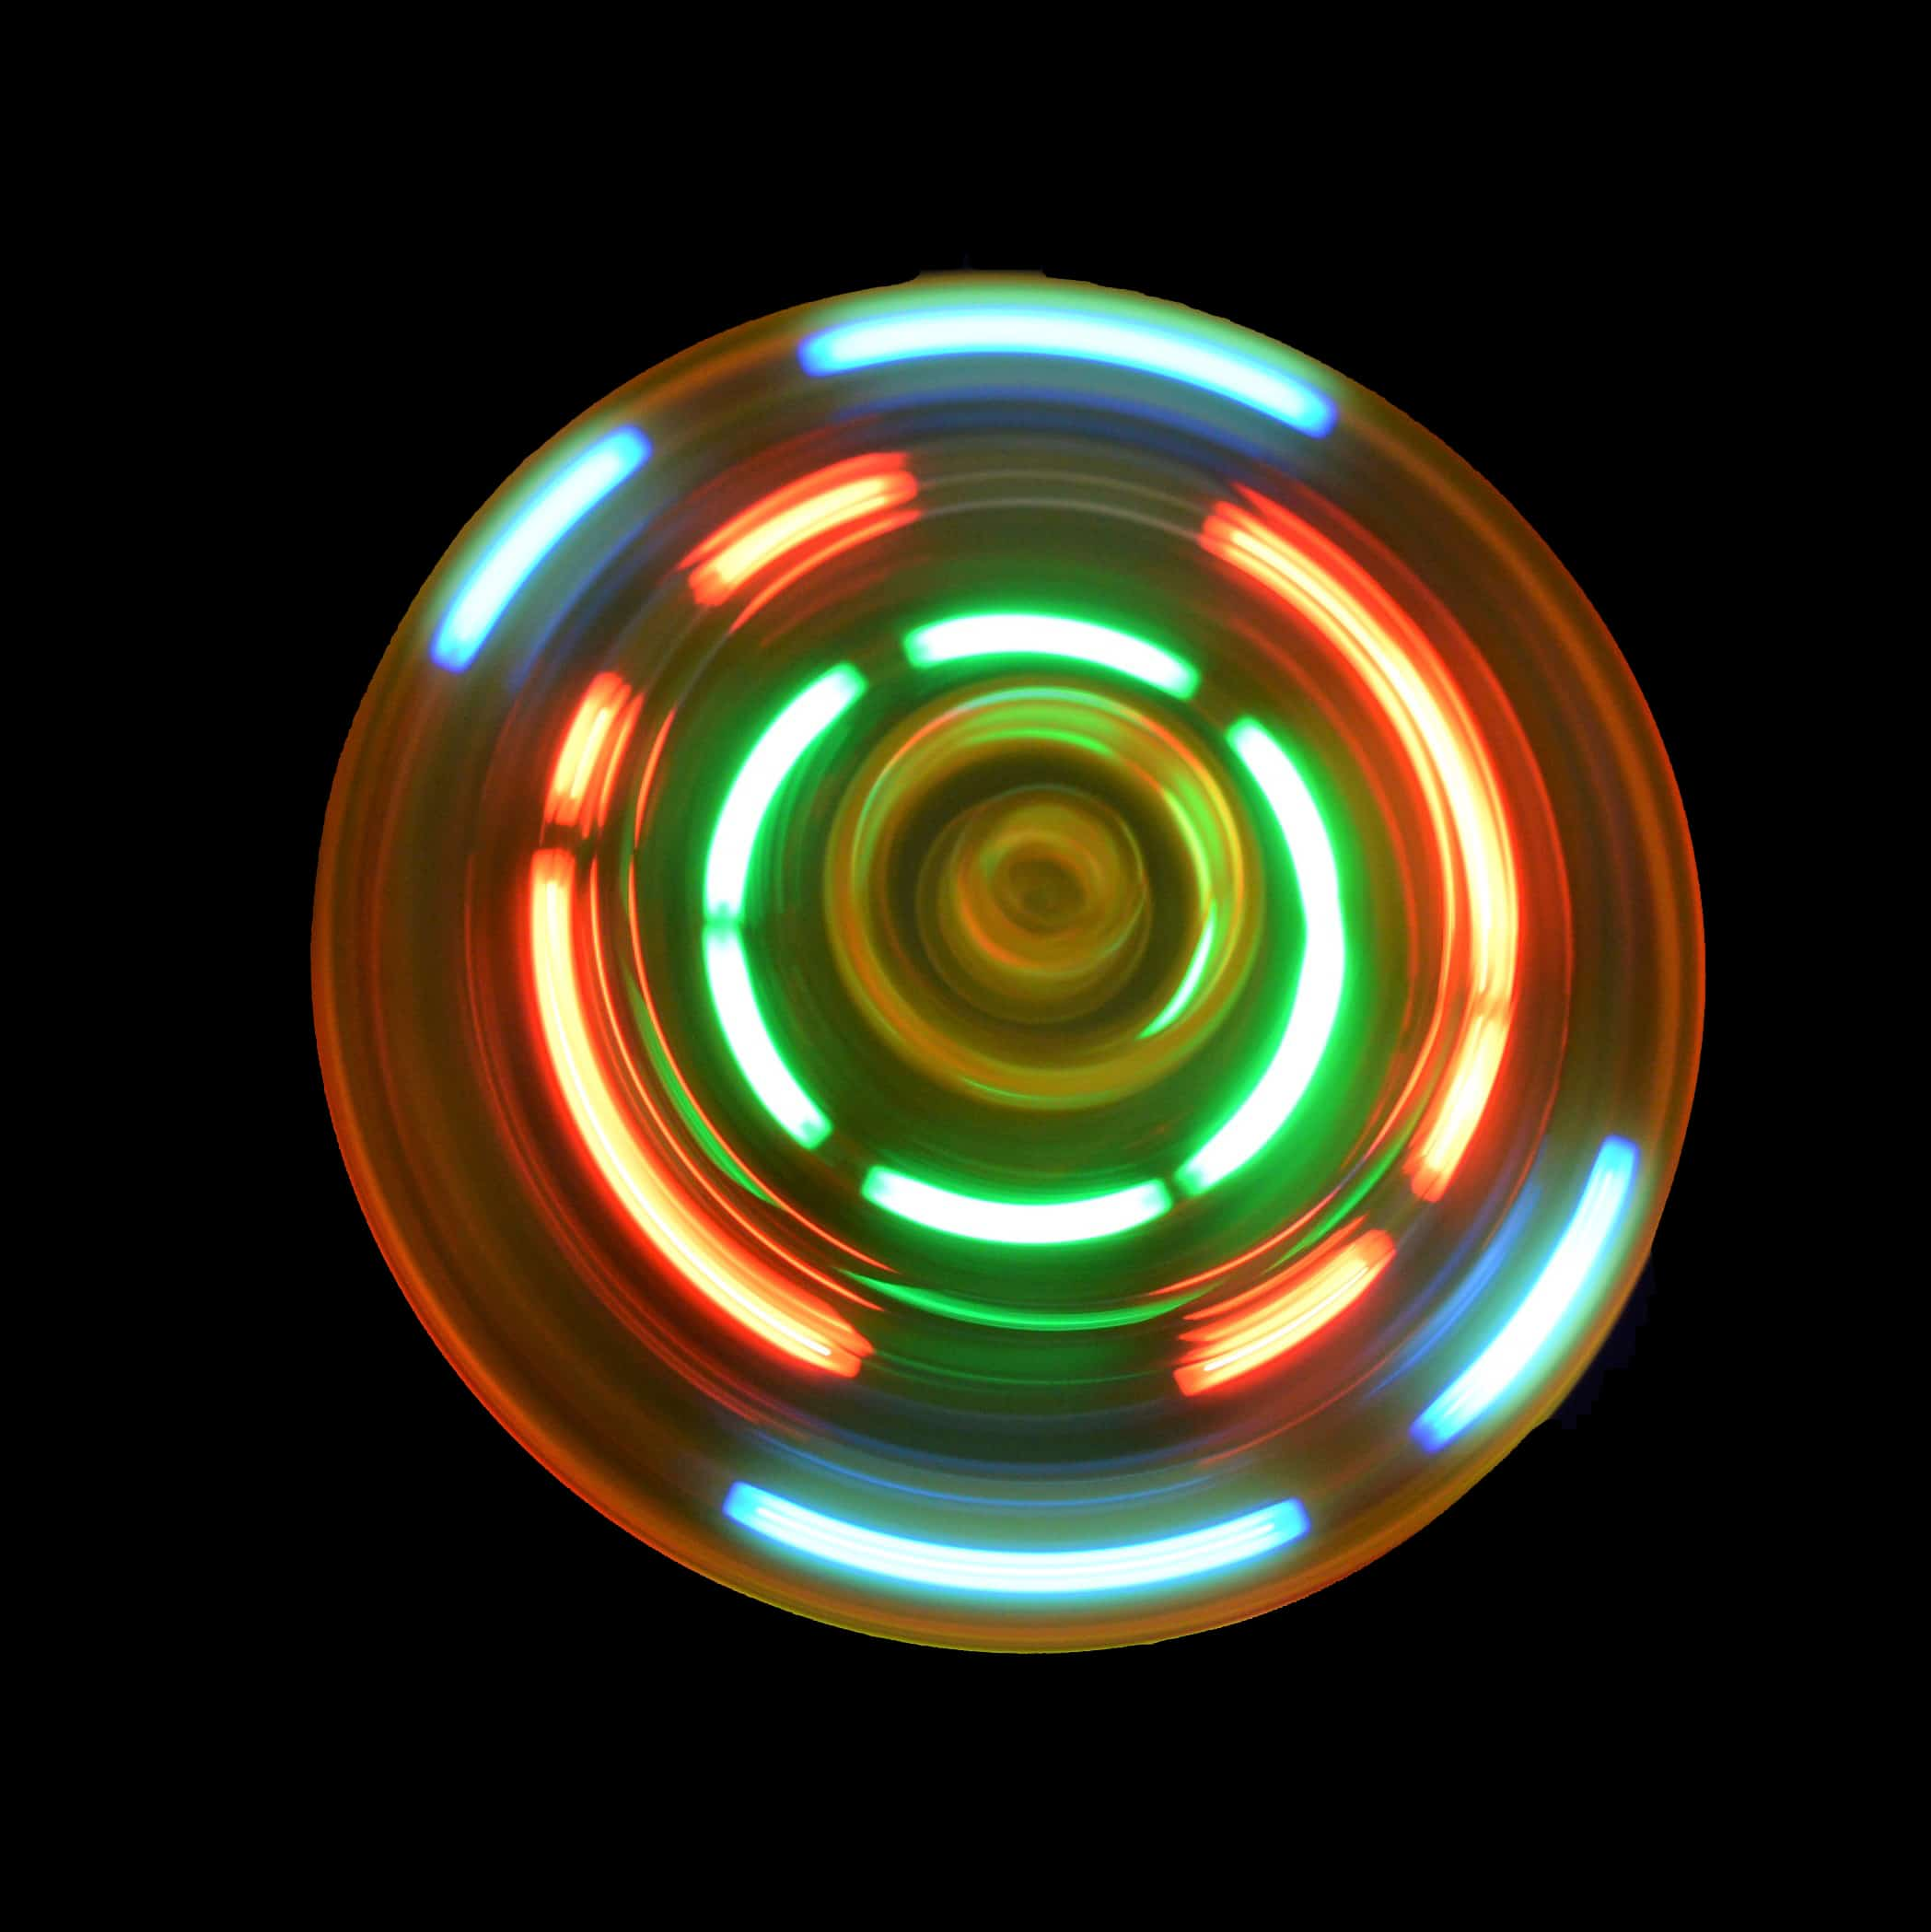 Top Spin (video game)